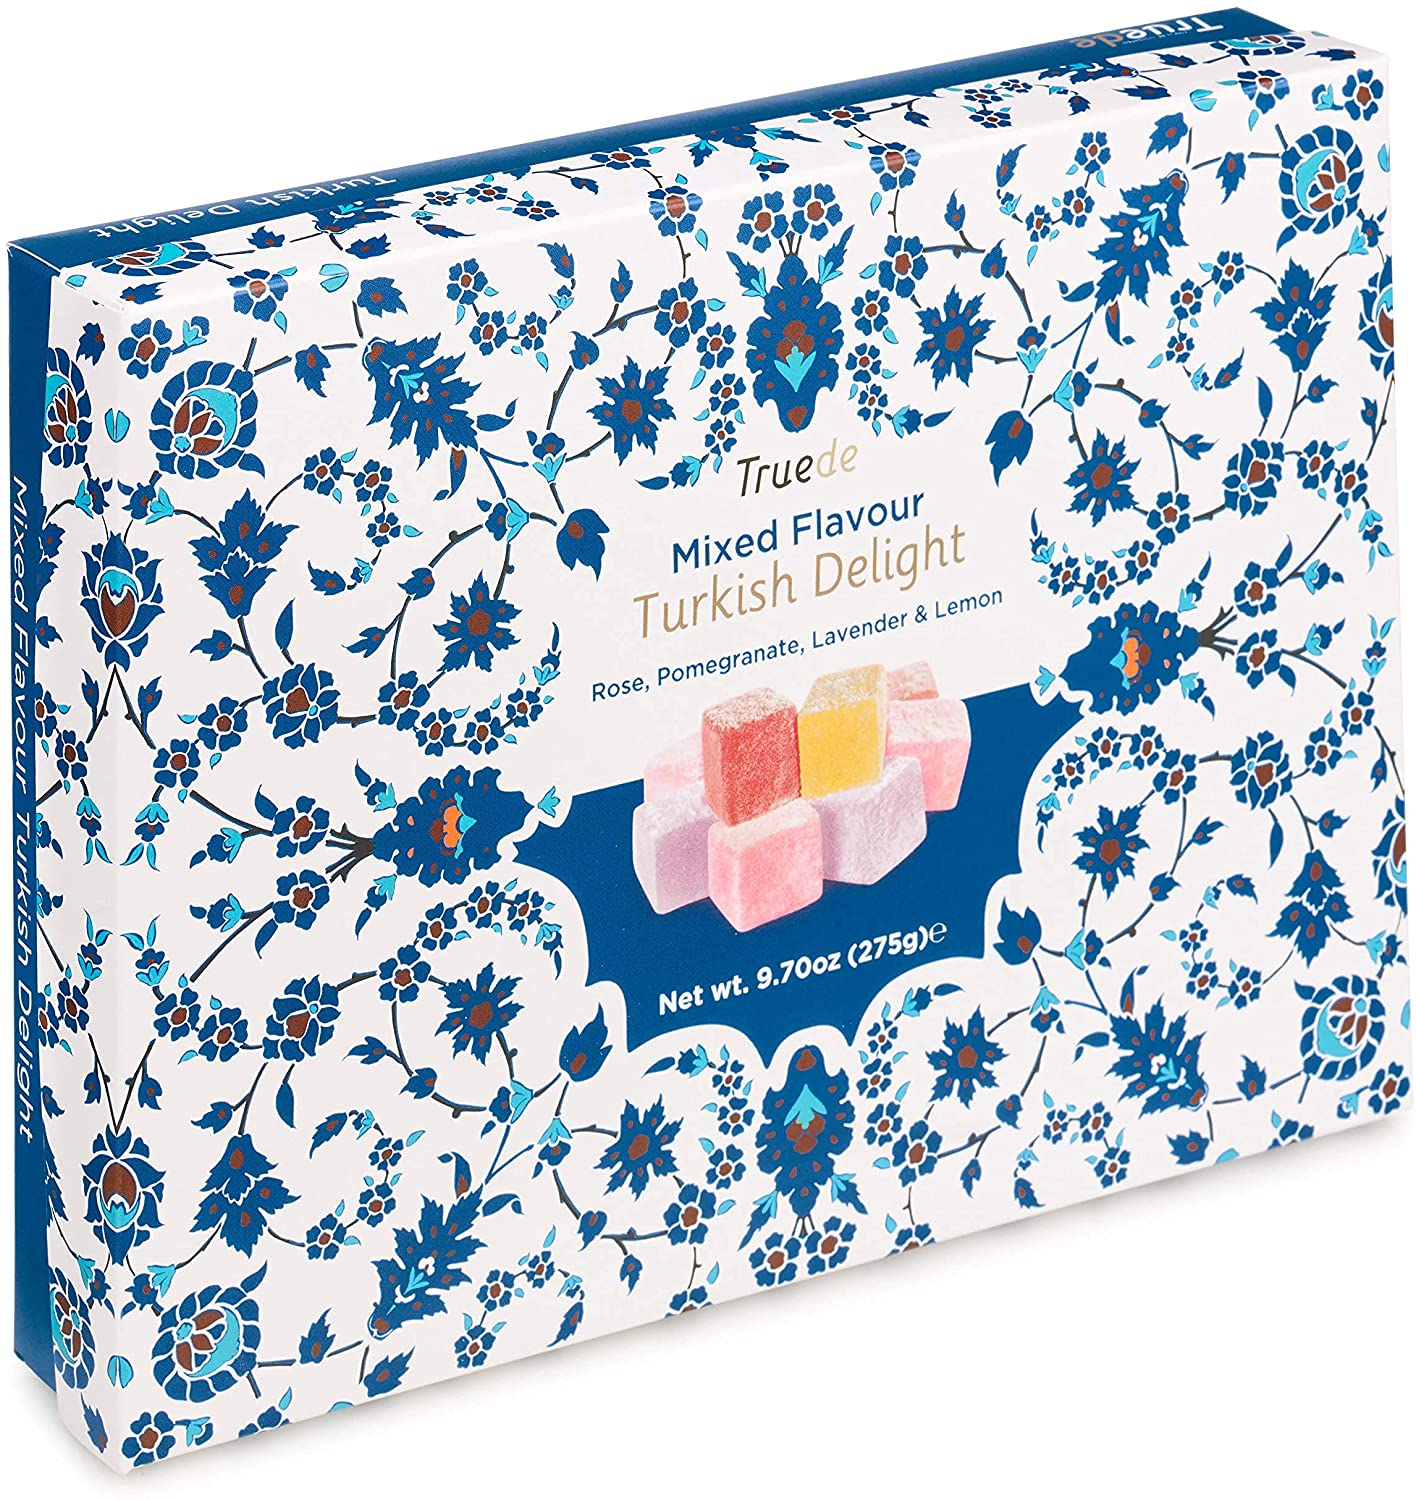 Truede Mixed Flavours Turkish Delight